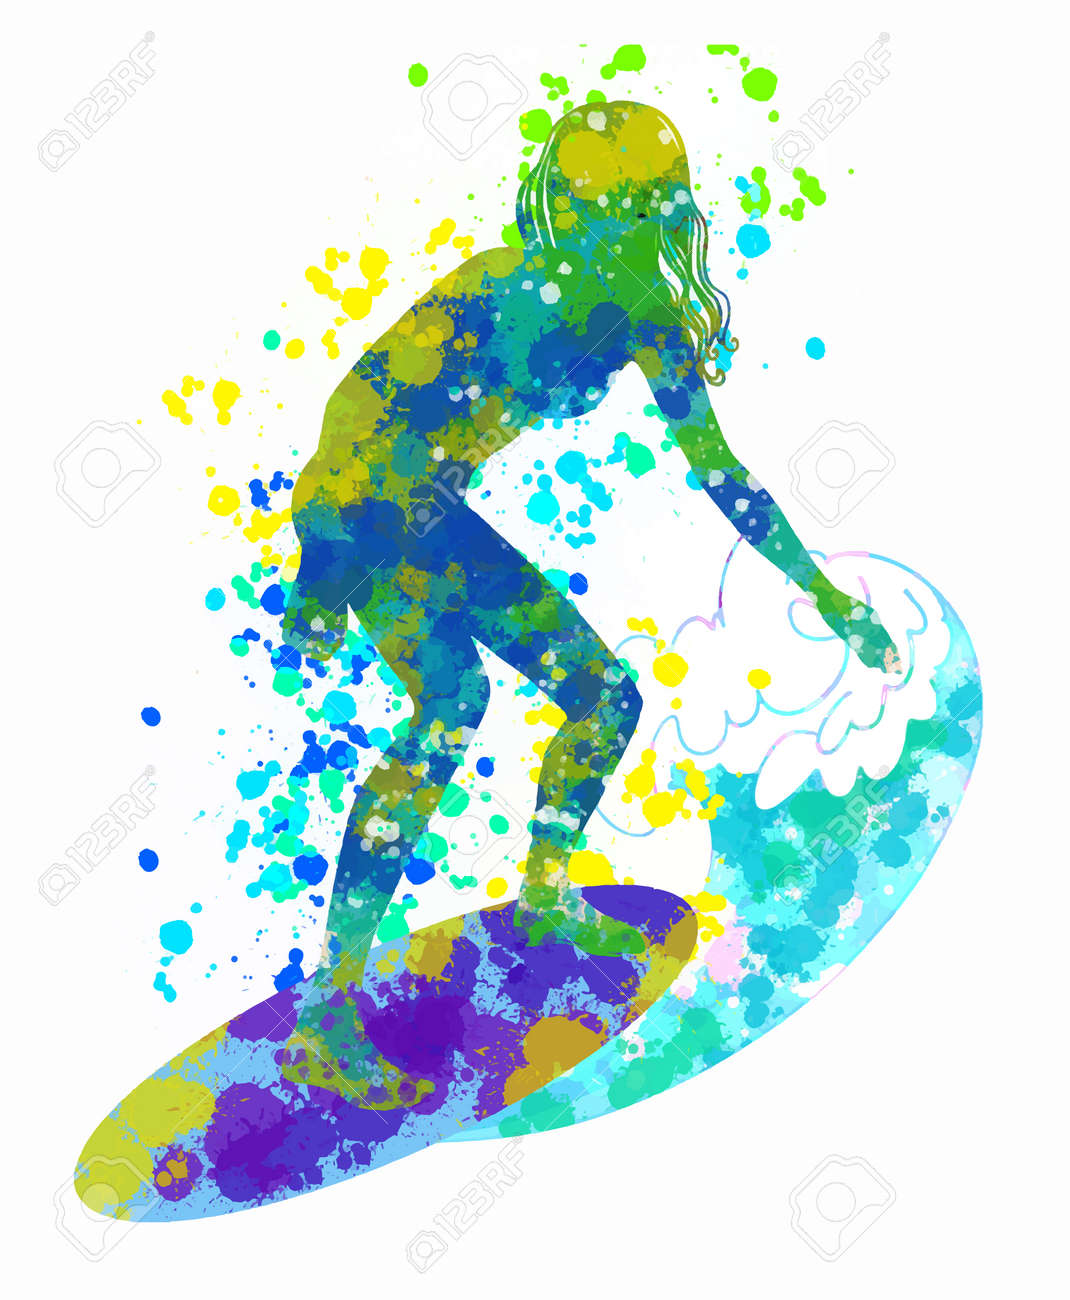 Girl surfer on a surfboard. Colorful digital splash and blobs texture. Hand drawn sketch. Vector illustration. - 169460686